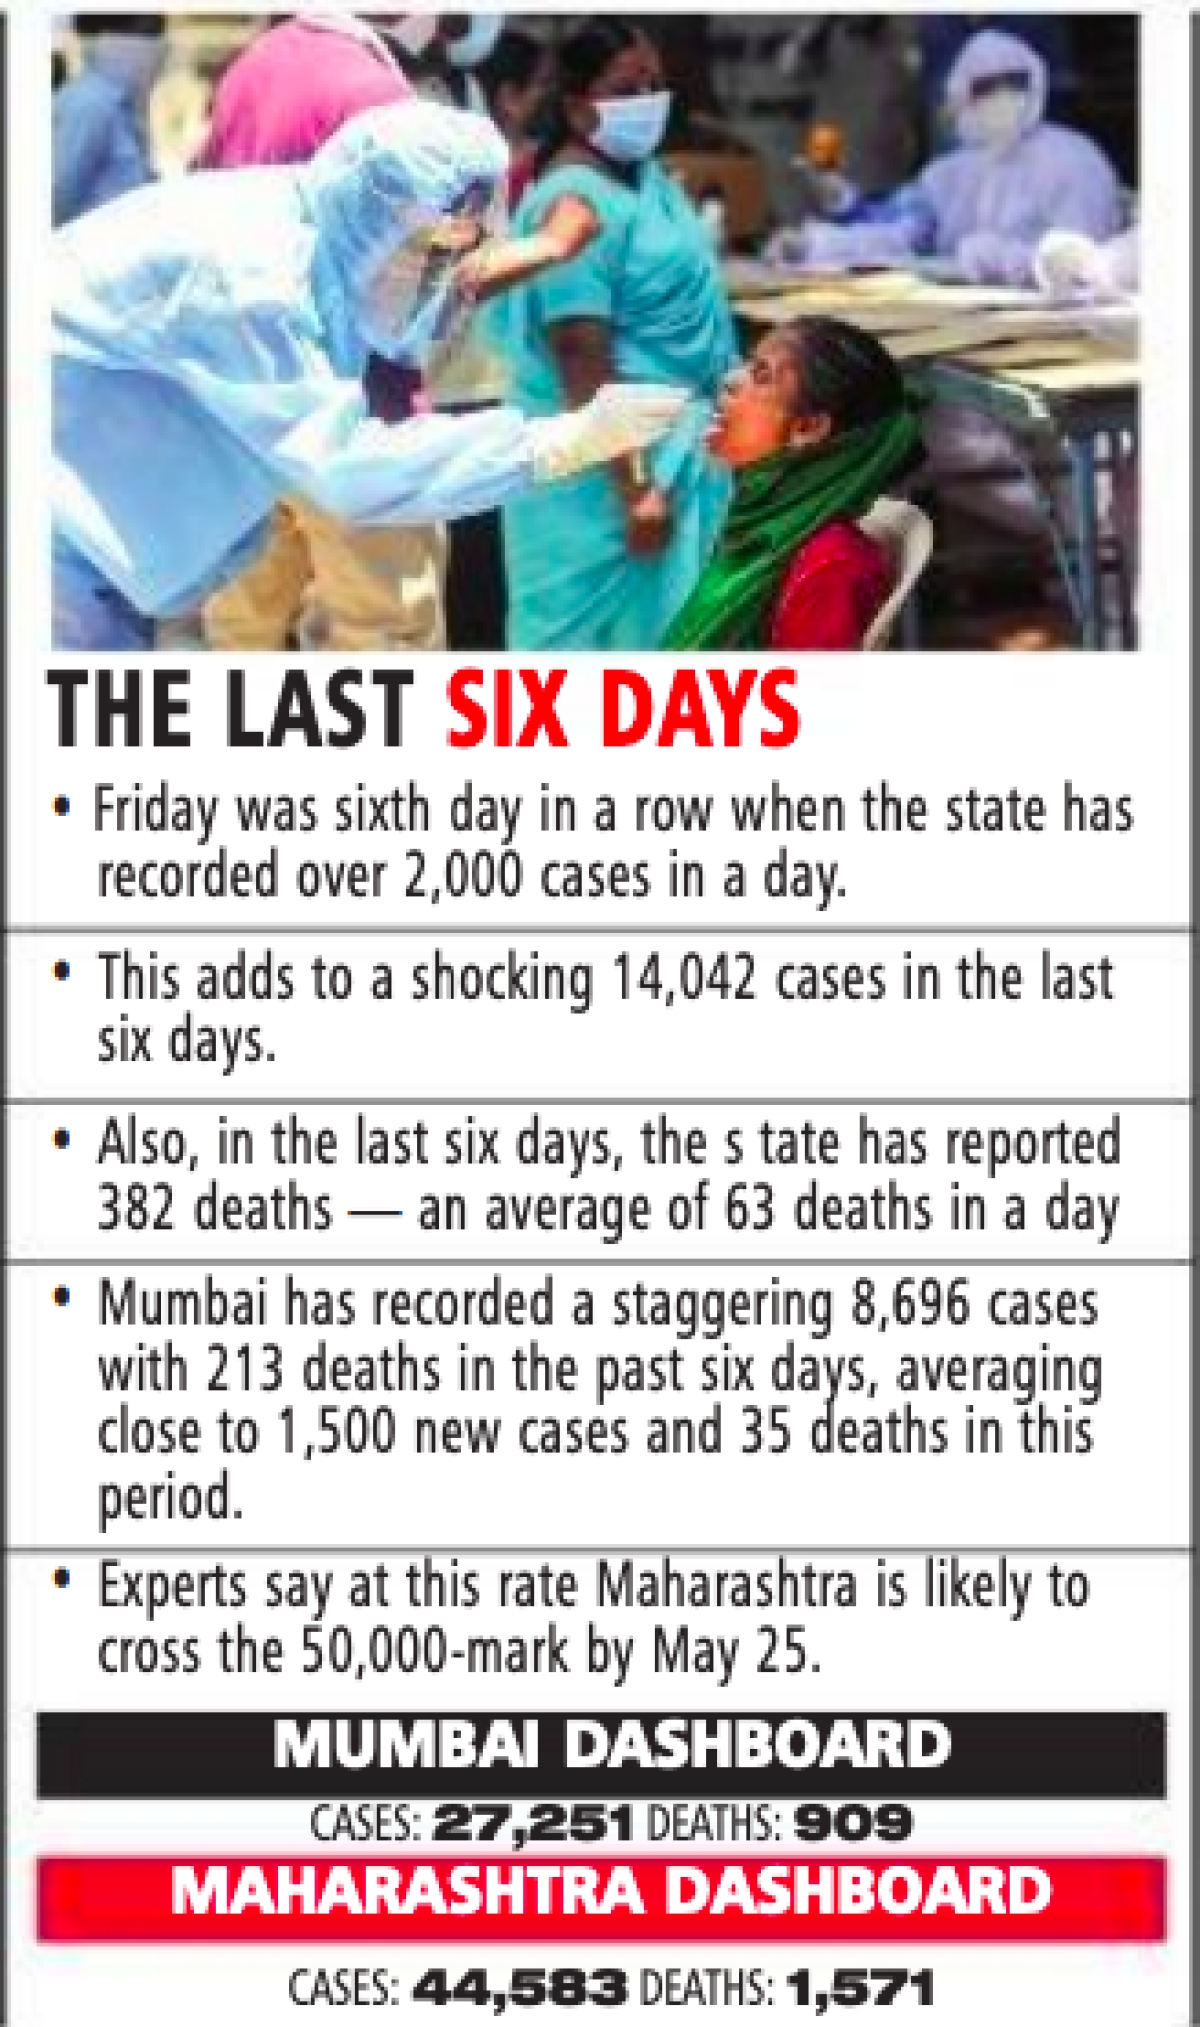 Coronavirus in Mumbai: City reports 8,696 in 6 days, 1,751 in past 24 hours; Maha likely to cross 50,000 by May 25